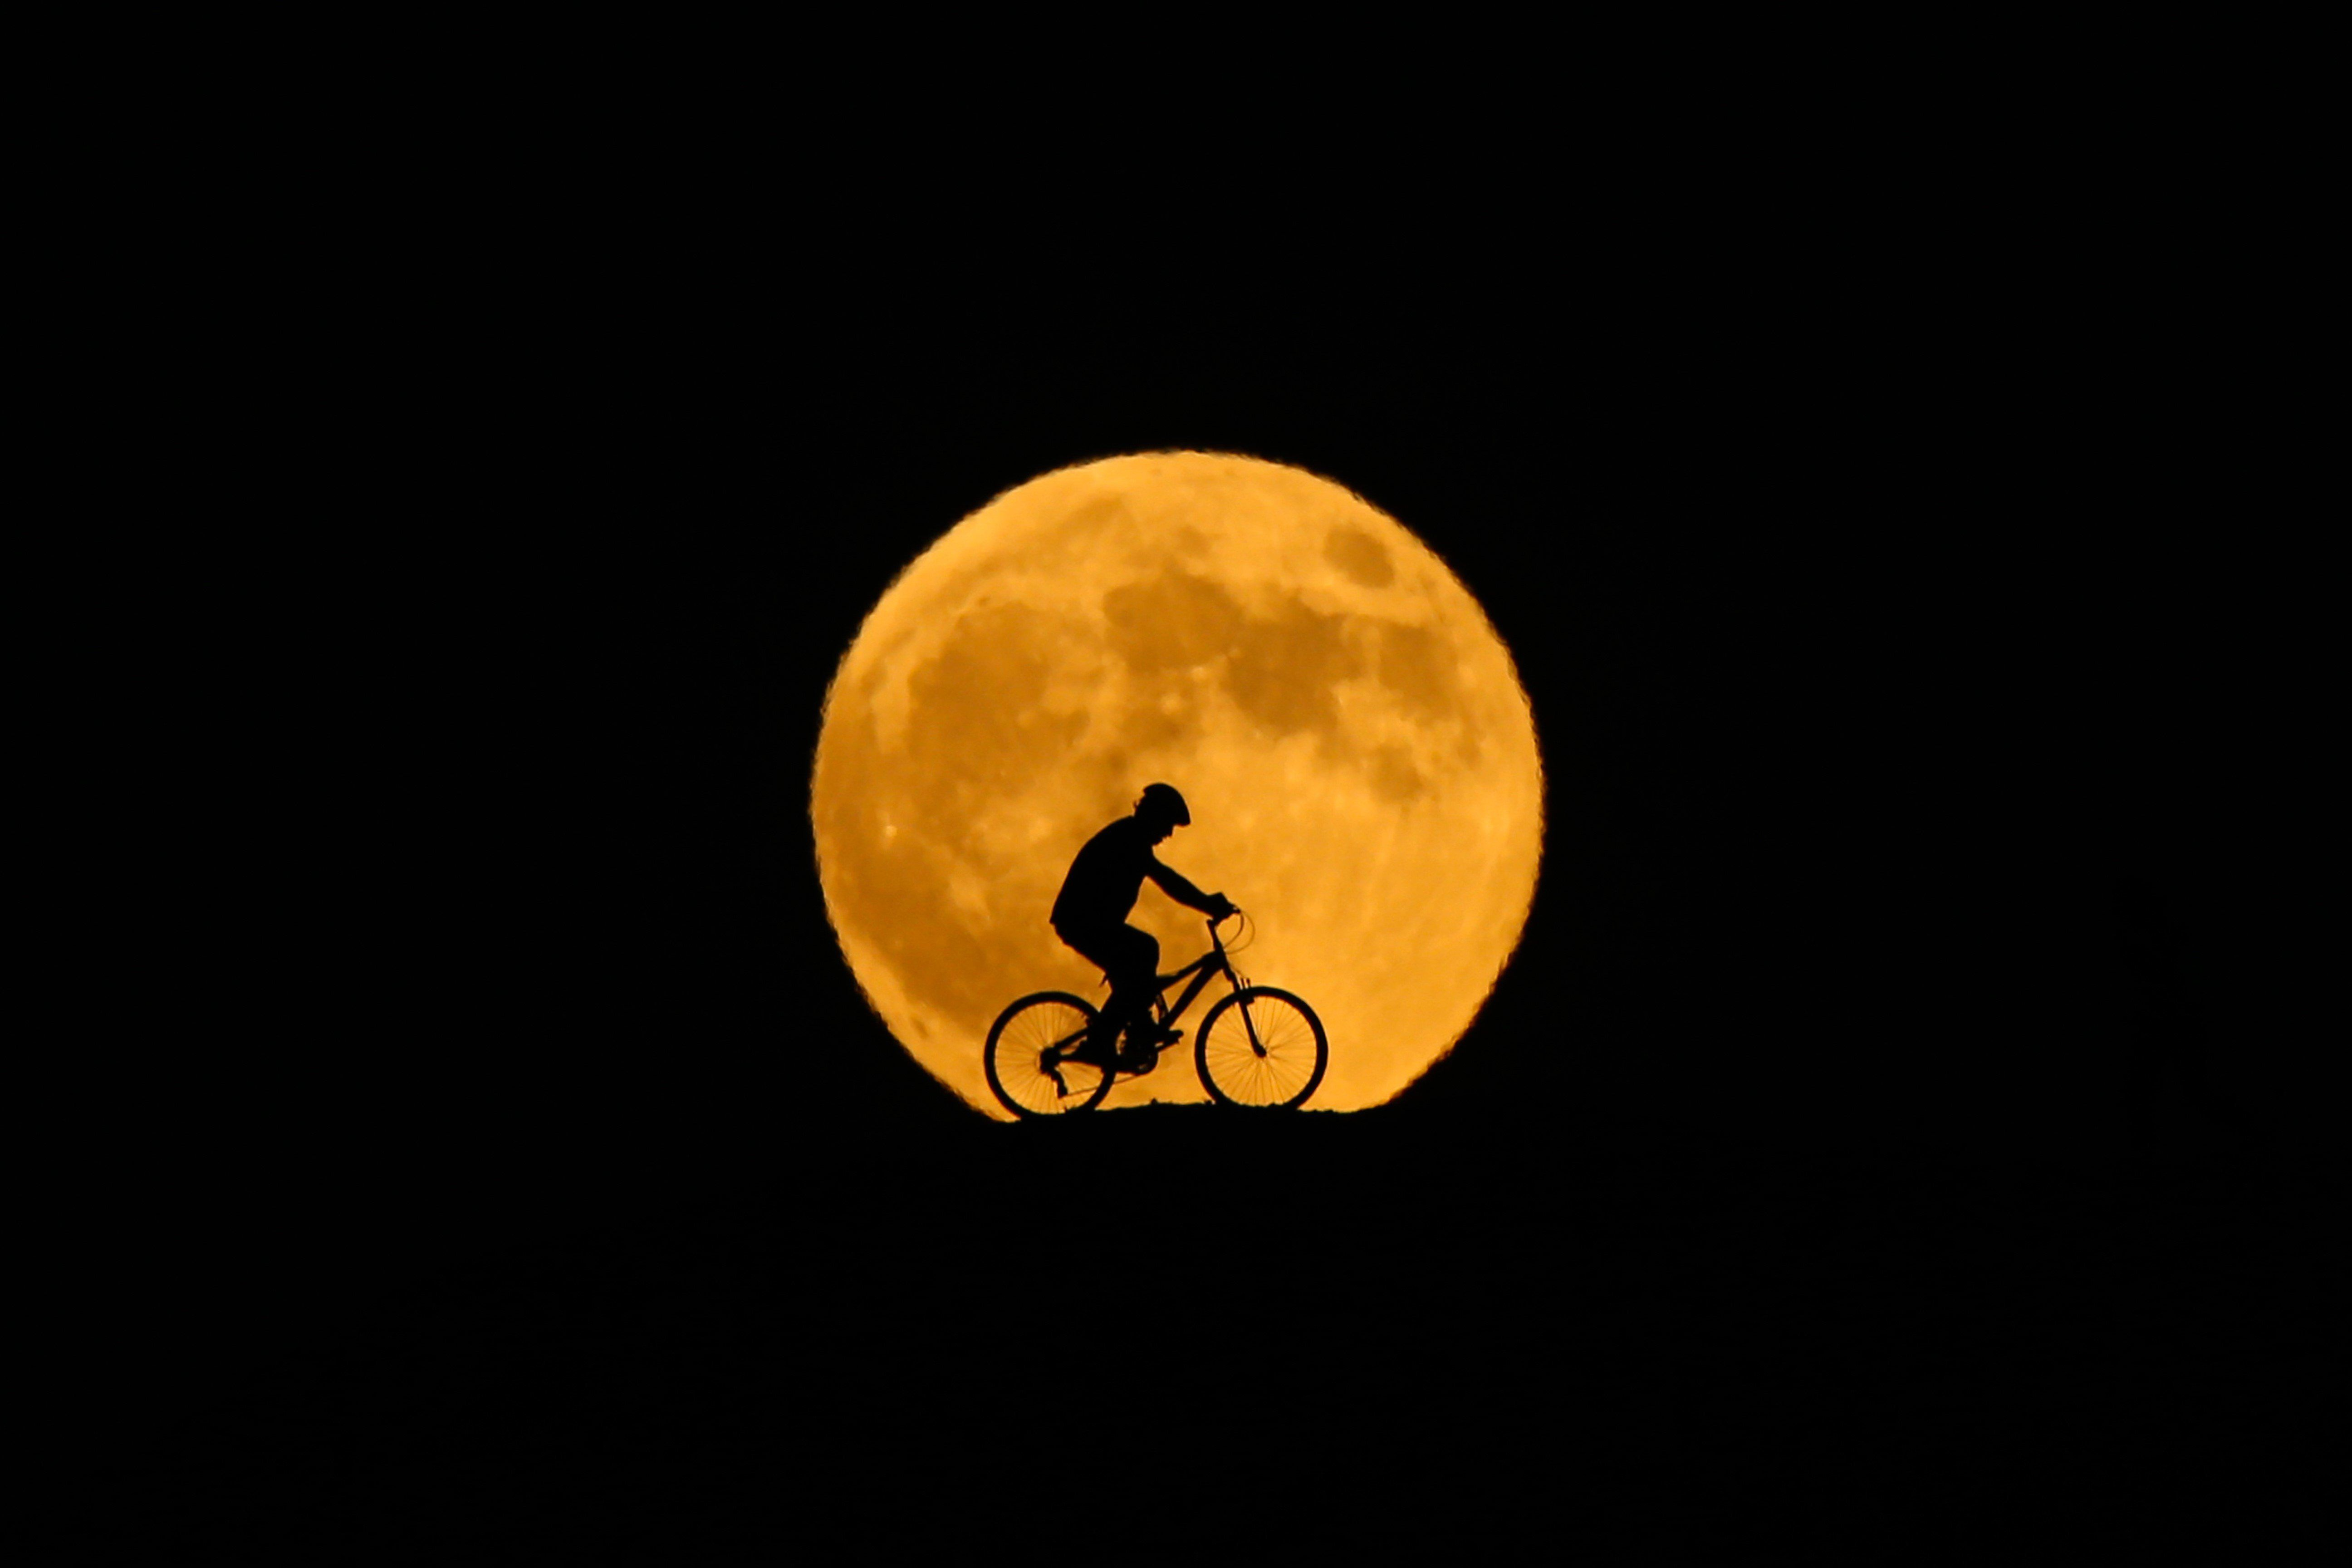 VAN, TURKEY - JULY 27: The full moon rises behind silhouette of a man riding a bicycle prior to the totally phase of Century's longest ''Blood Moon'' eclipse in Van, Turkey on July 27, 2018. (Photo by Ozkan Bilgin/Anadolu Agency/Getty Images)